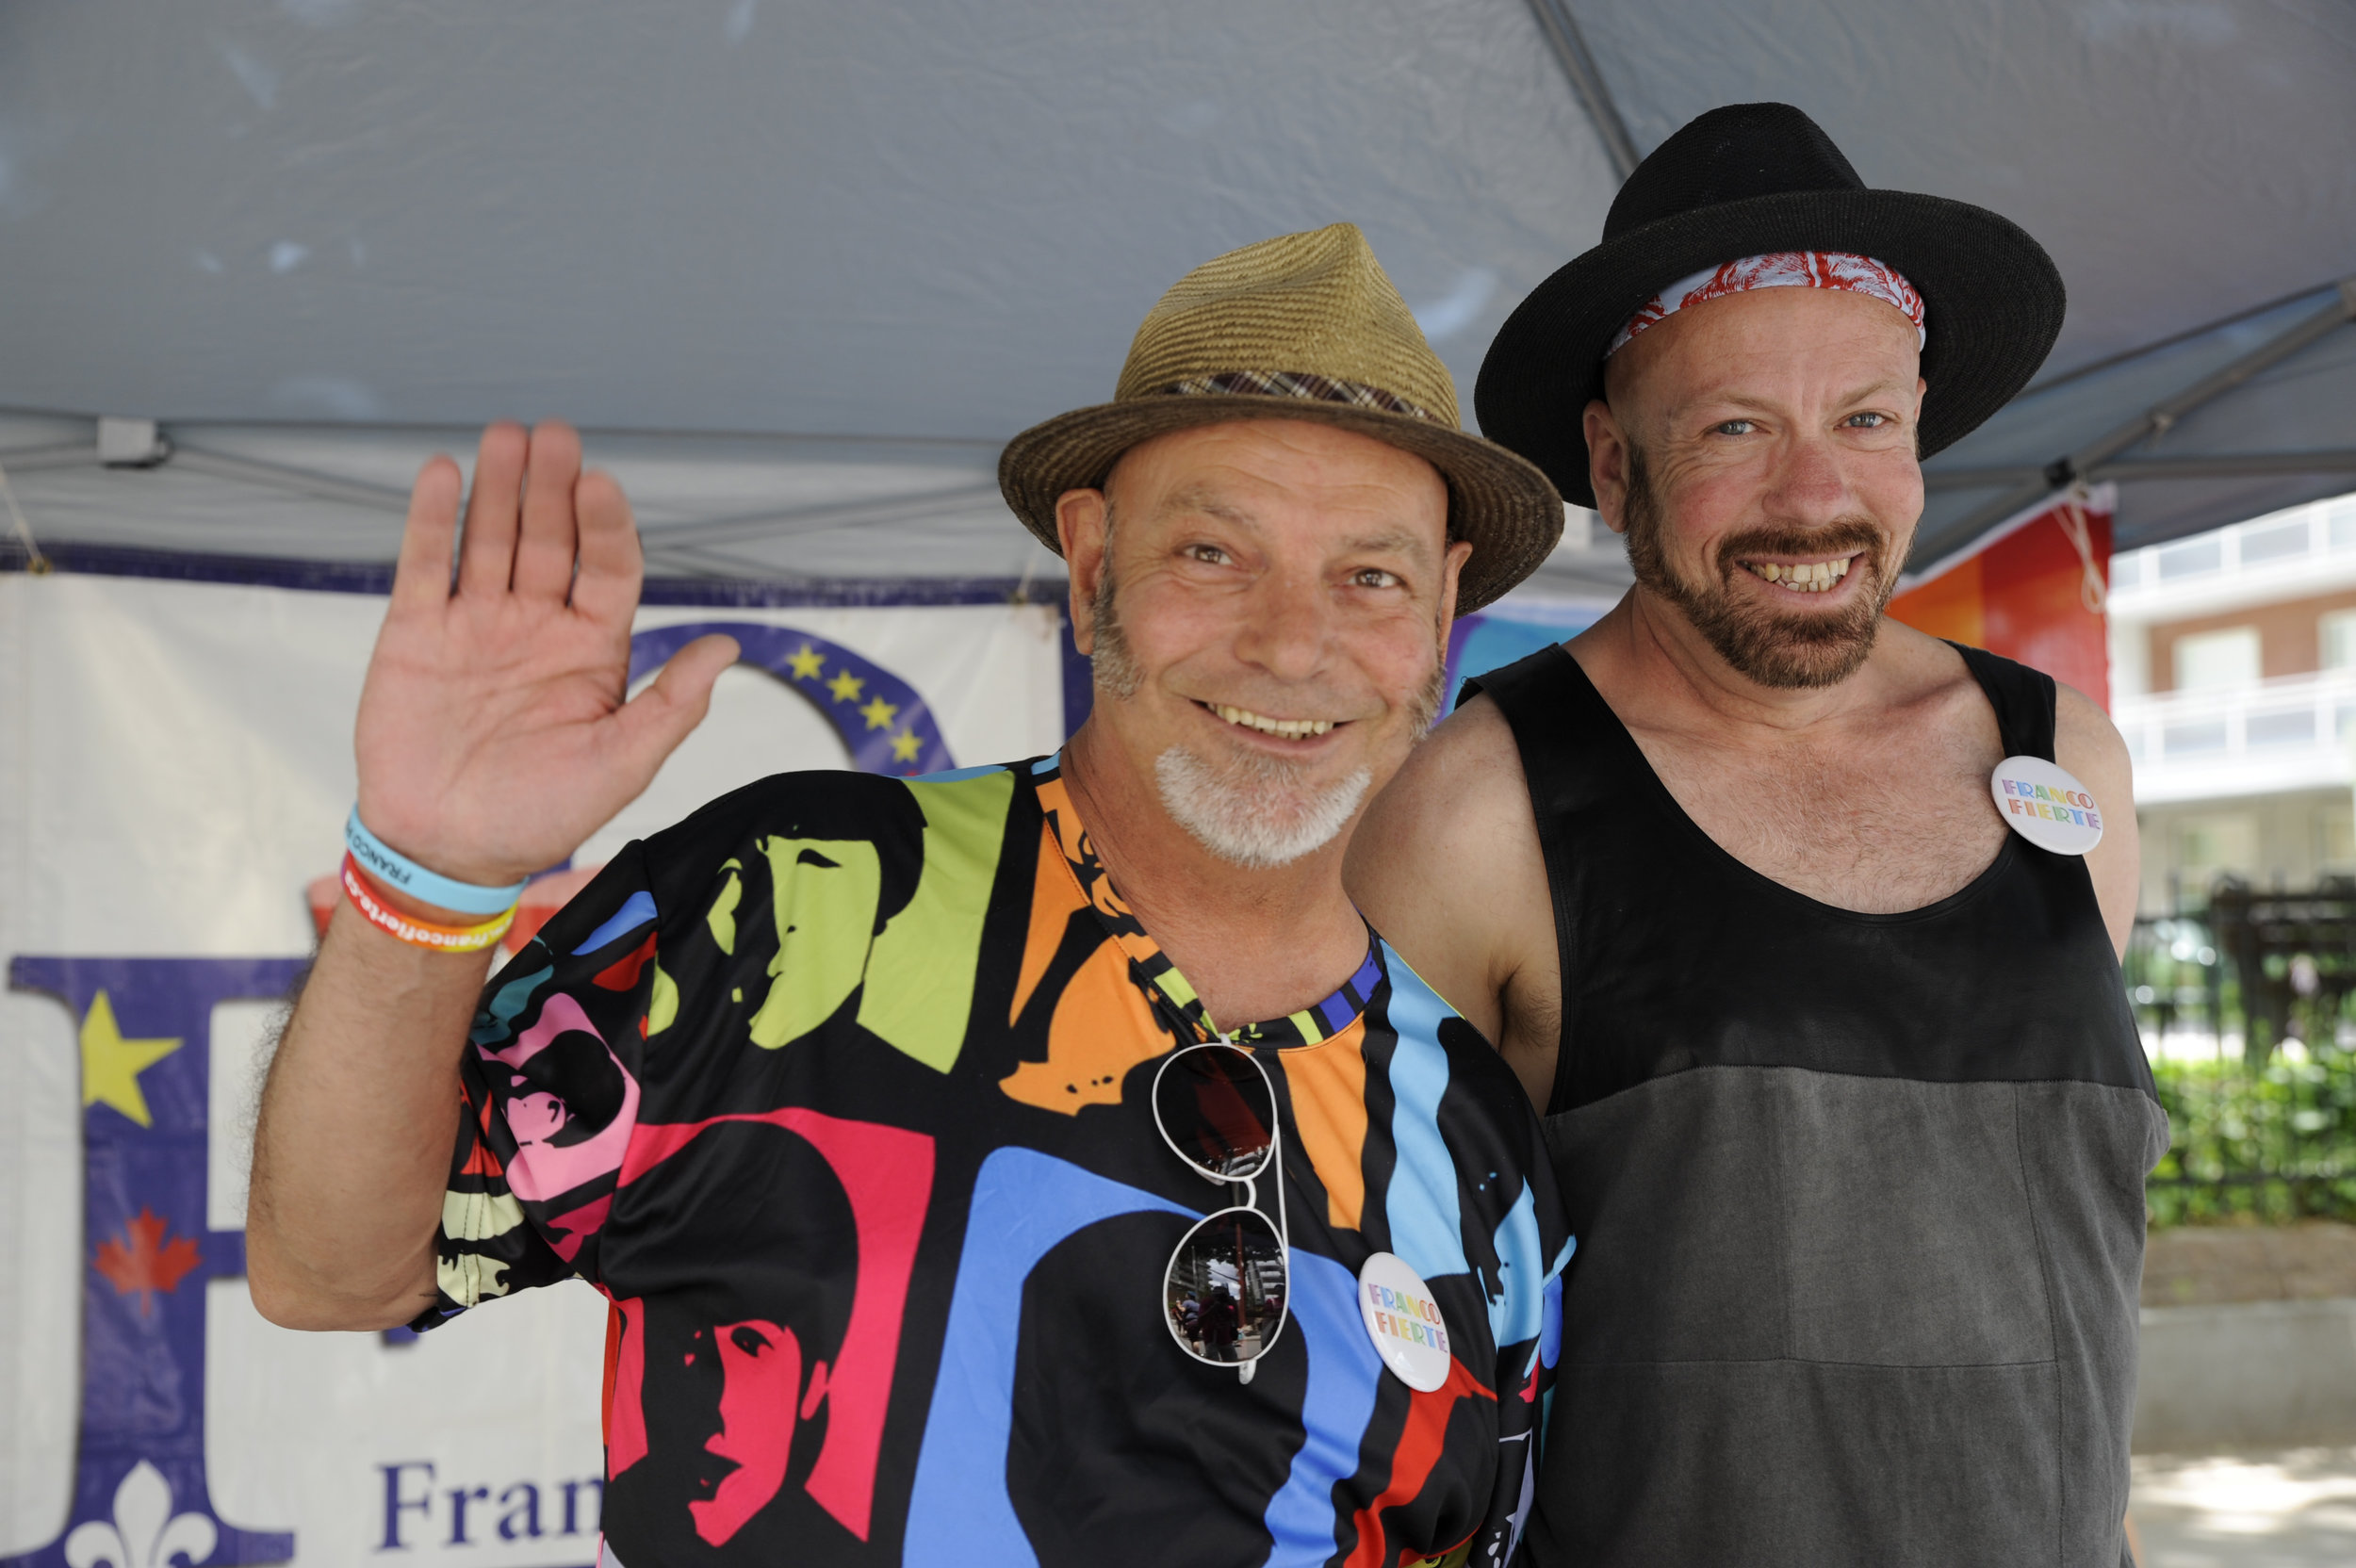 Pride_2016_street fair_Paul_Kinnis_9.jpg